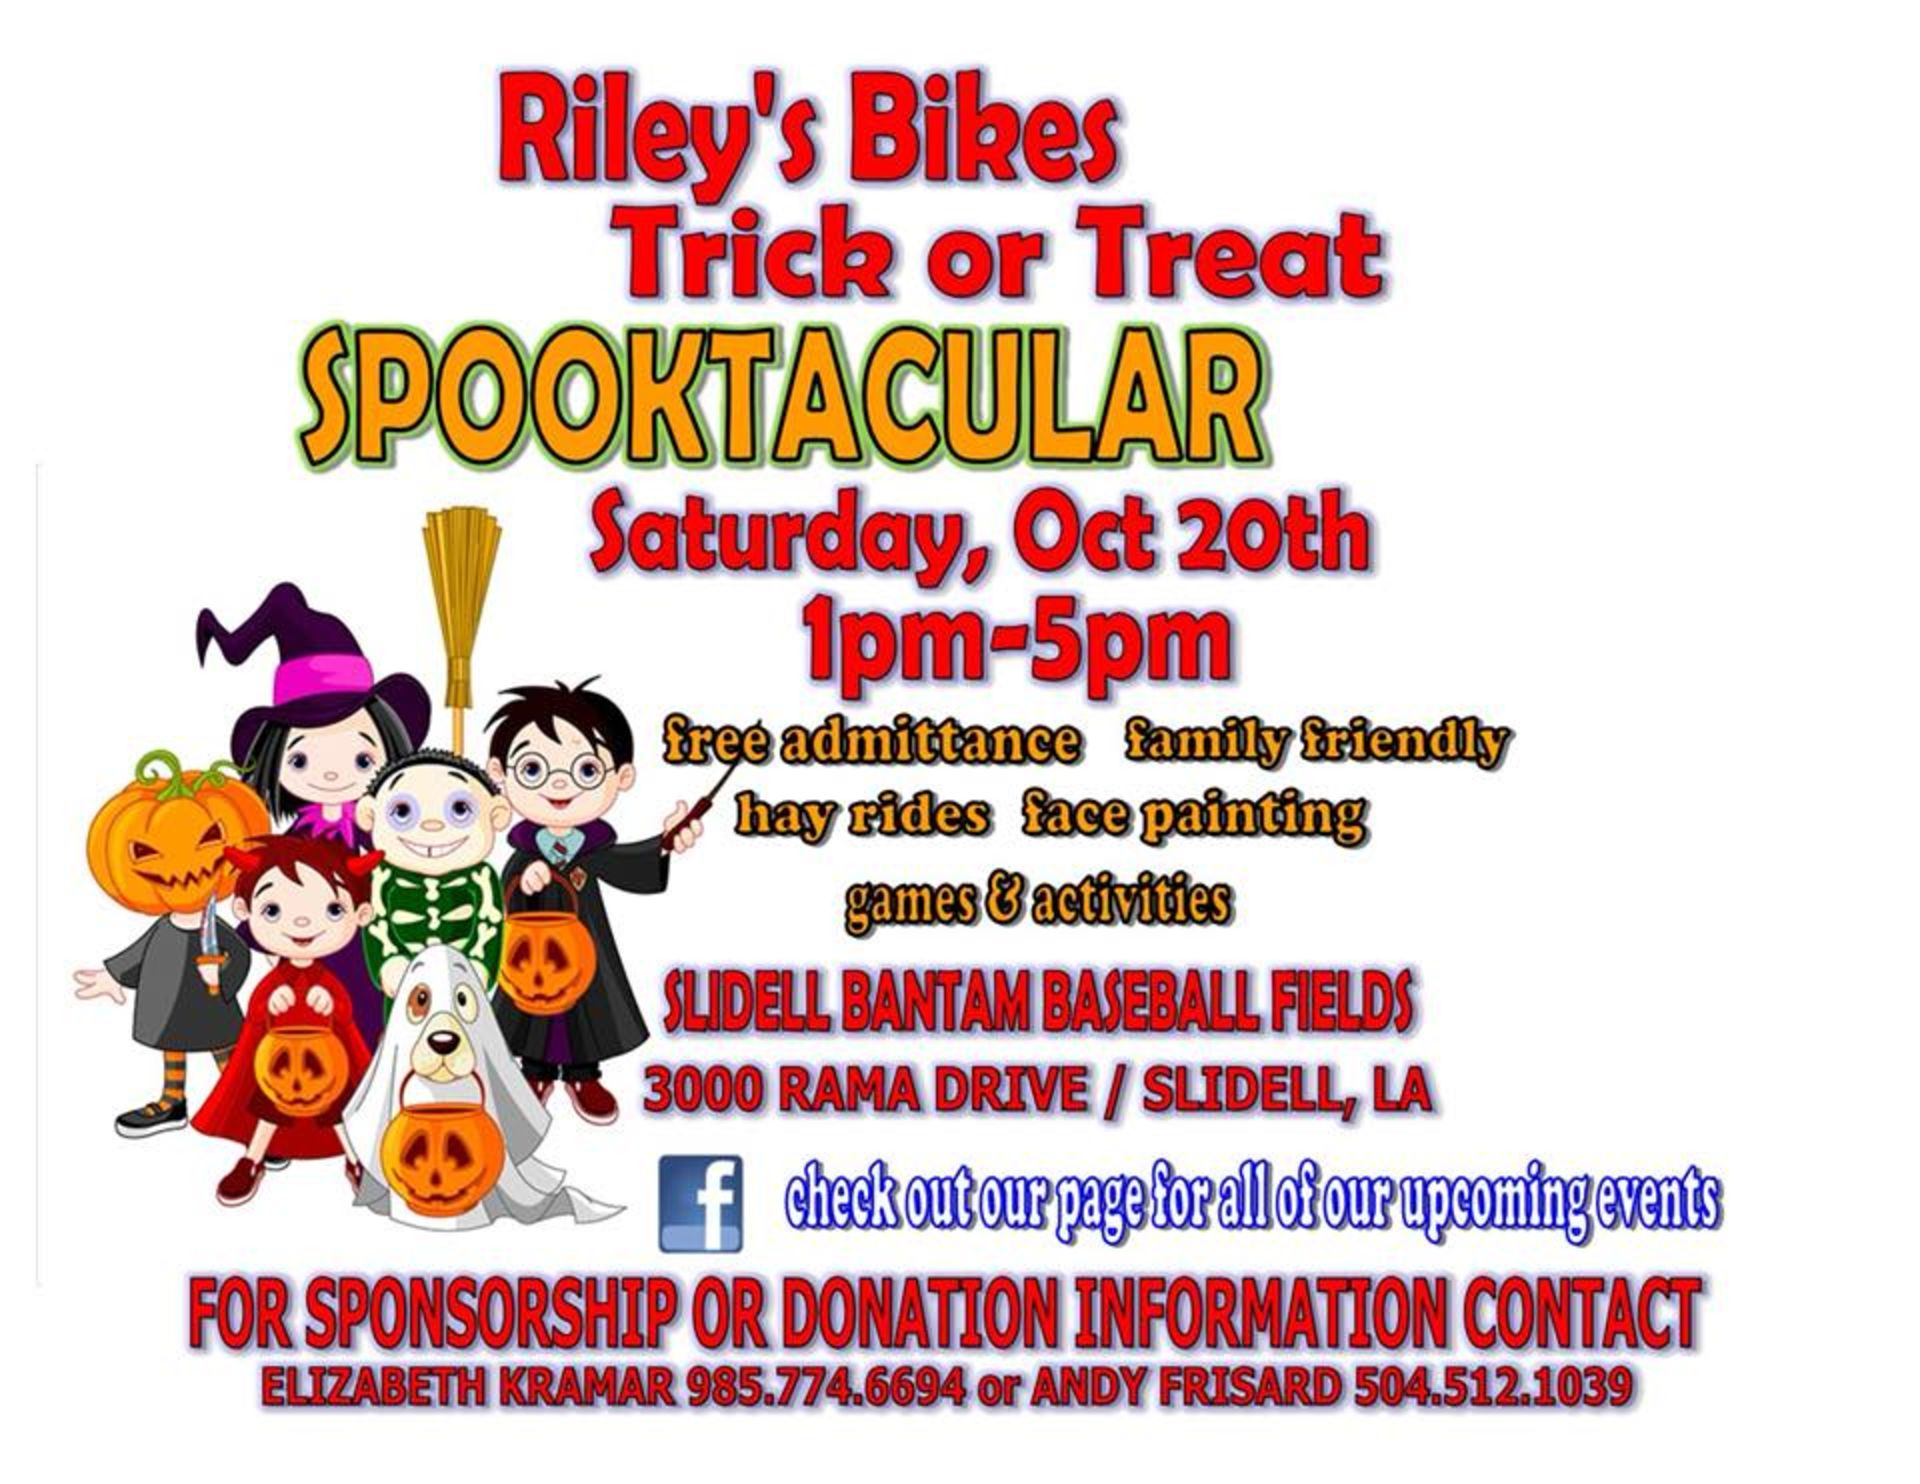 Sponsorship: Riley's Bikes Trick or Treat Spooktacular